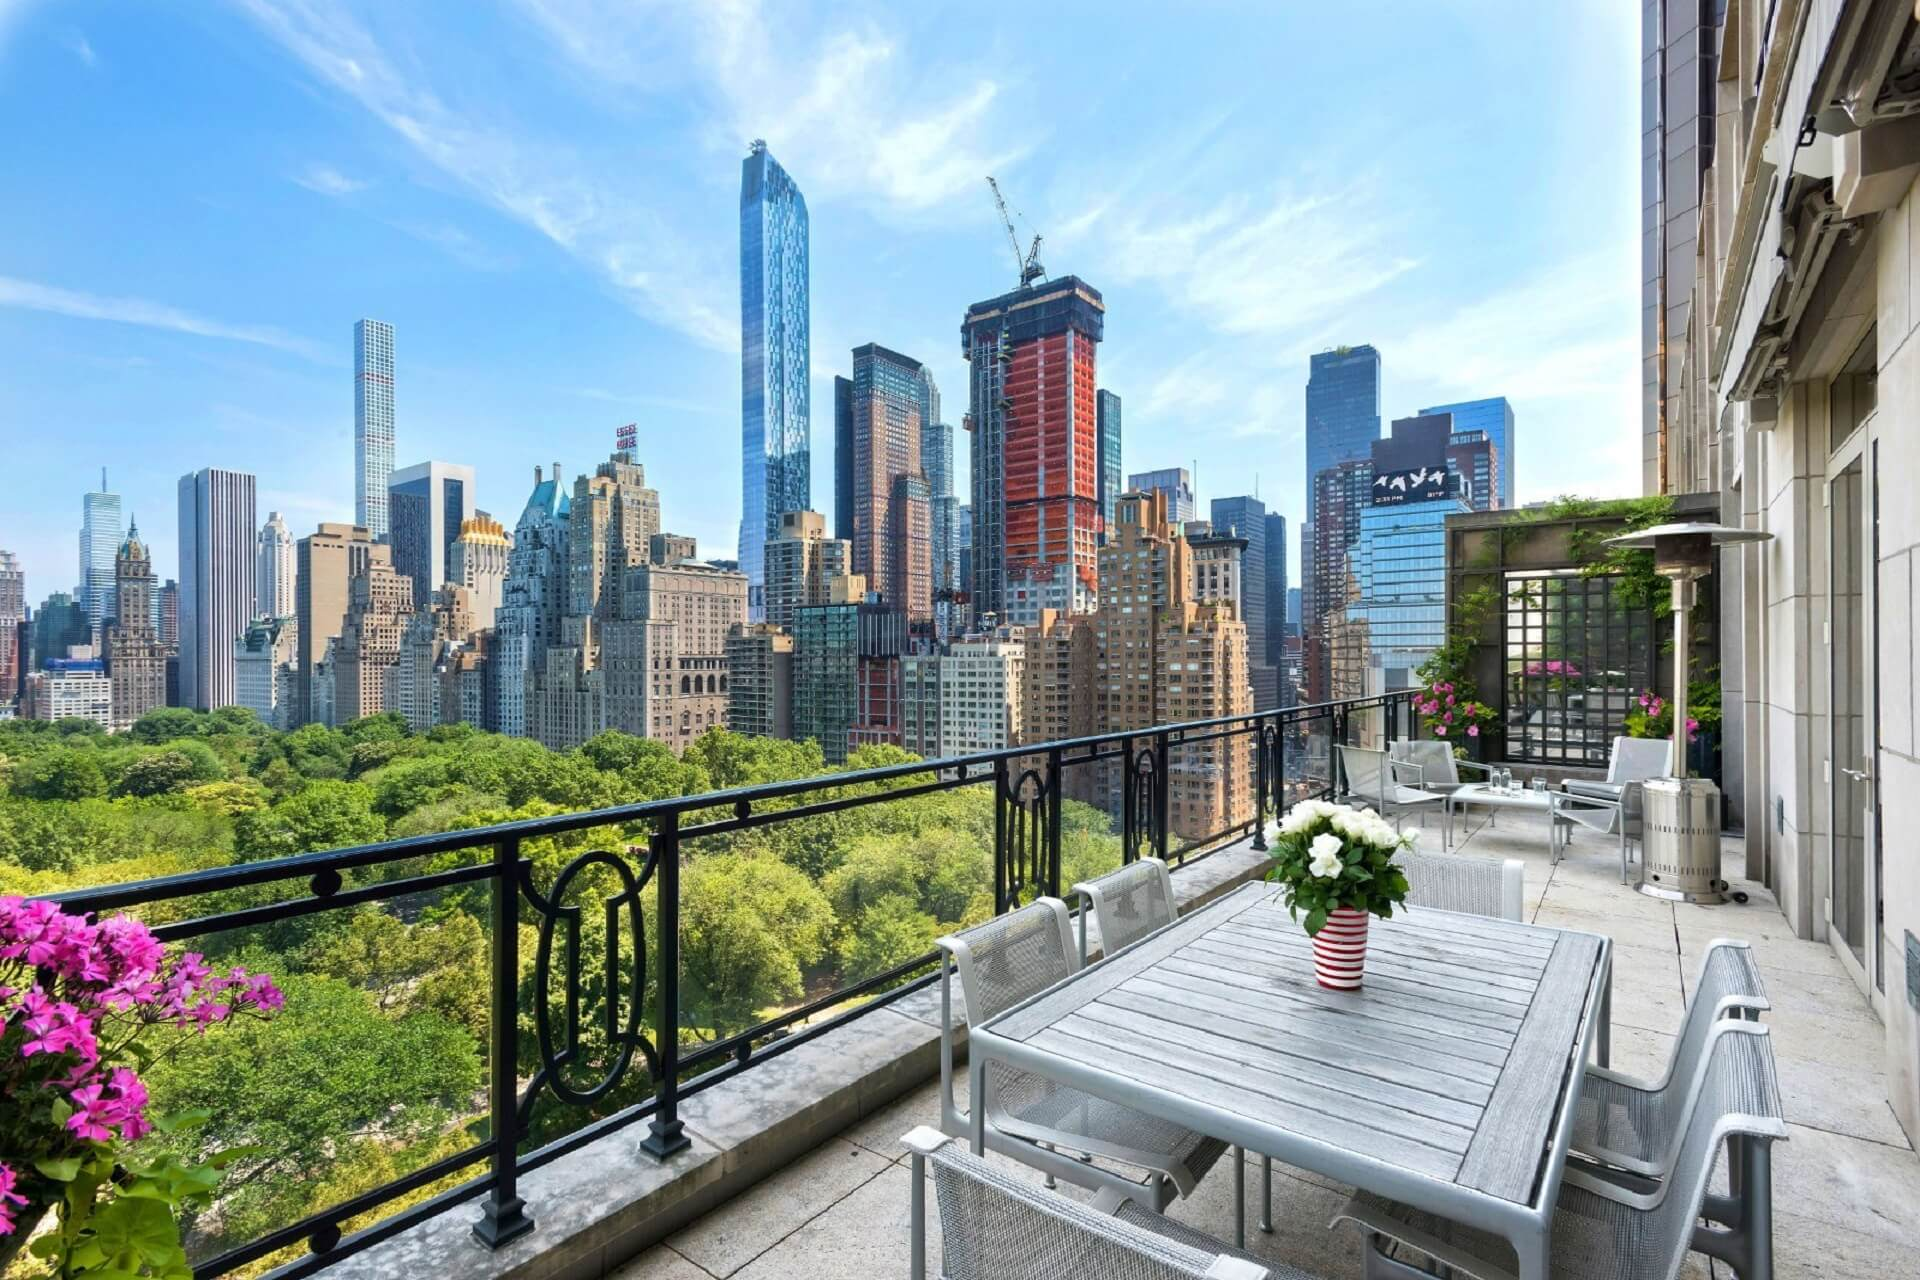 15 Central Park West - The Most Powerful And Luxurious Address In The World